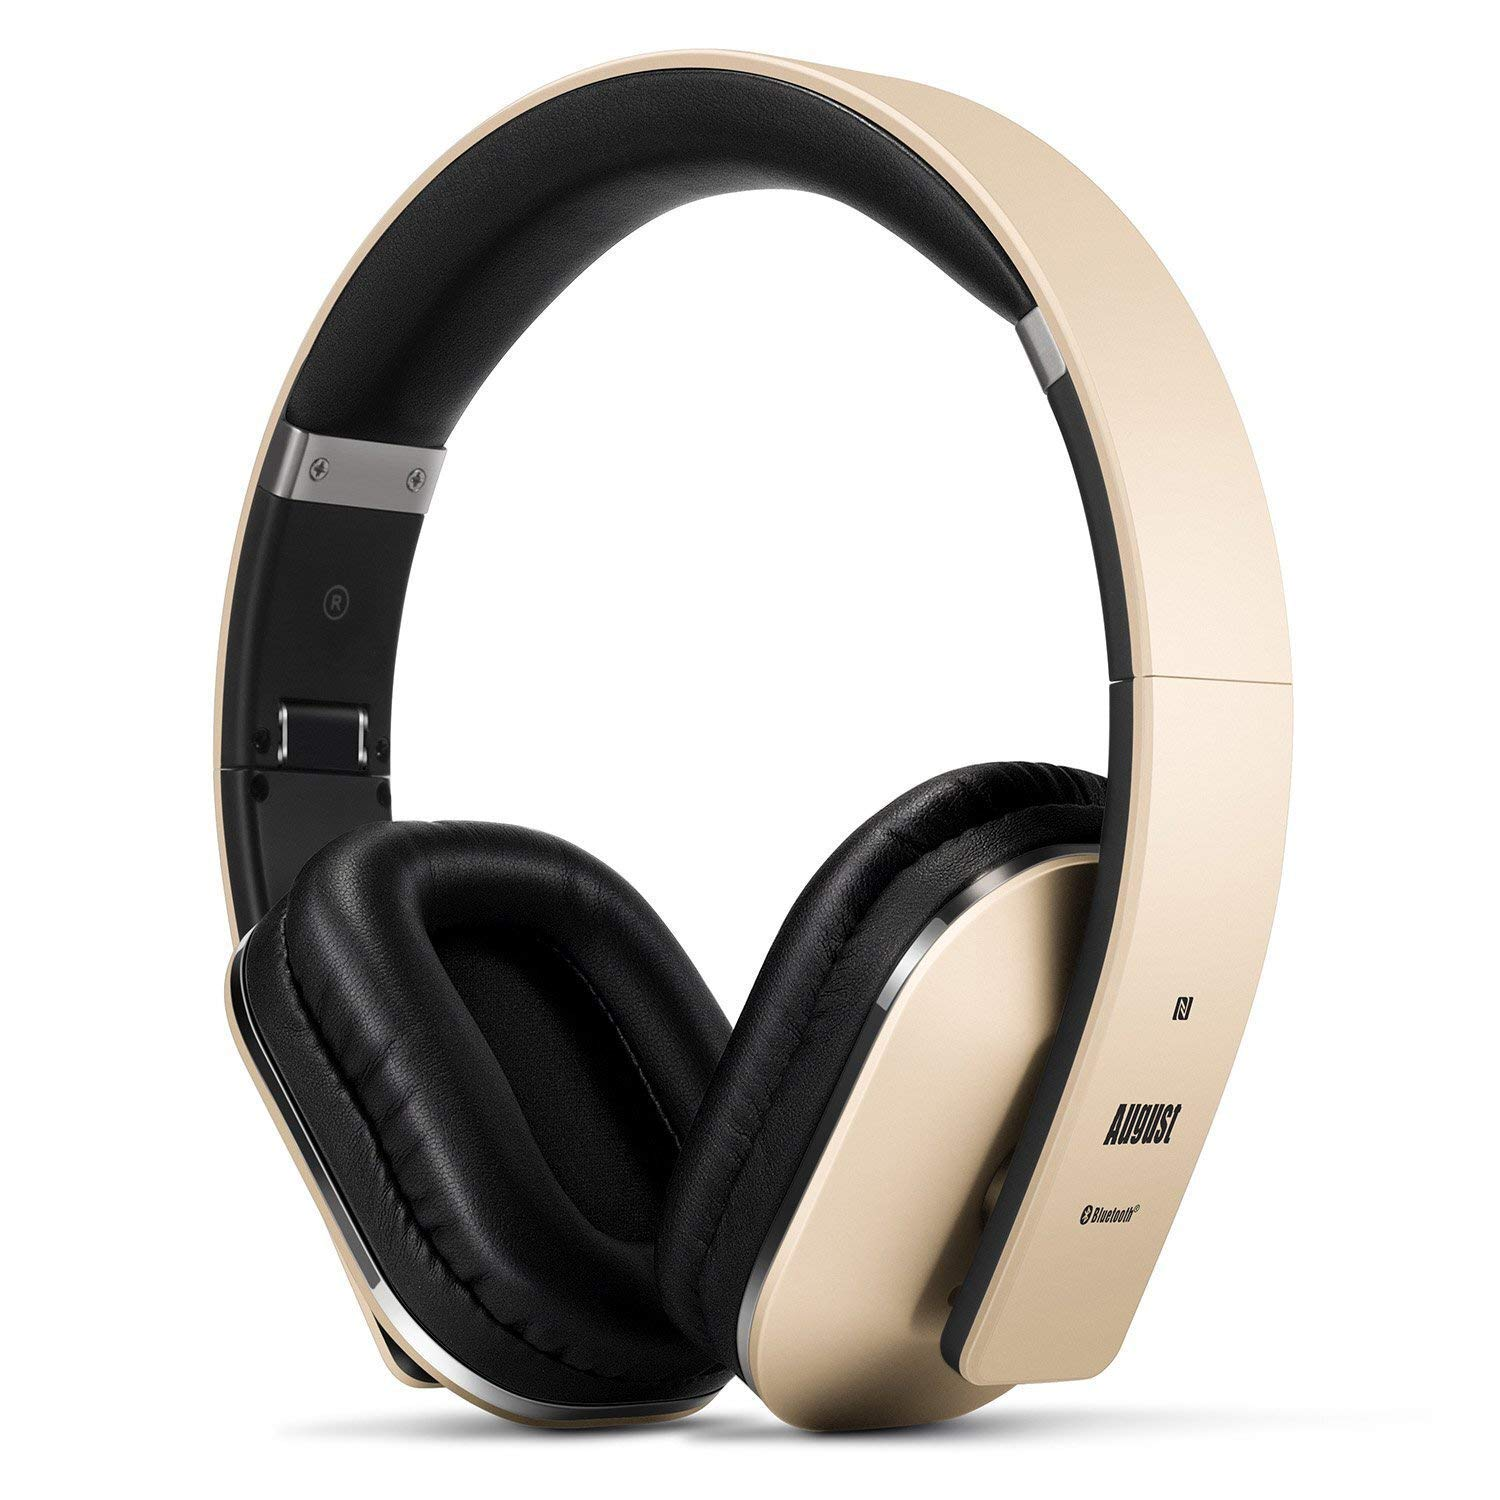 b0e3da35133 Over Ear Bluetooth Wireless Headphones - August EP650 - Enjoy Bass Rich  Sound and Optimum Comfort from this Wireless Over Ear Headset with NFC and  aptX ...